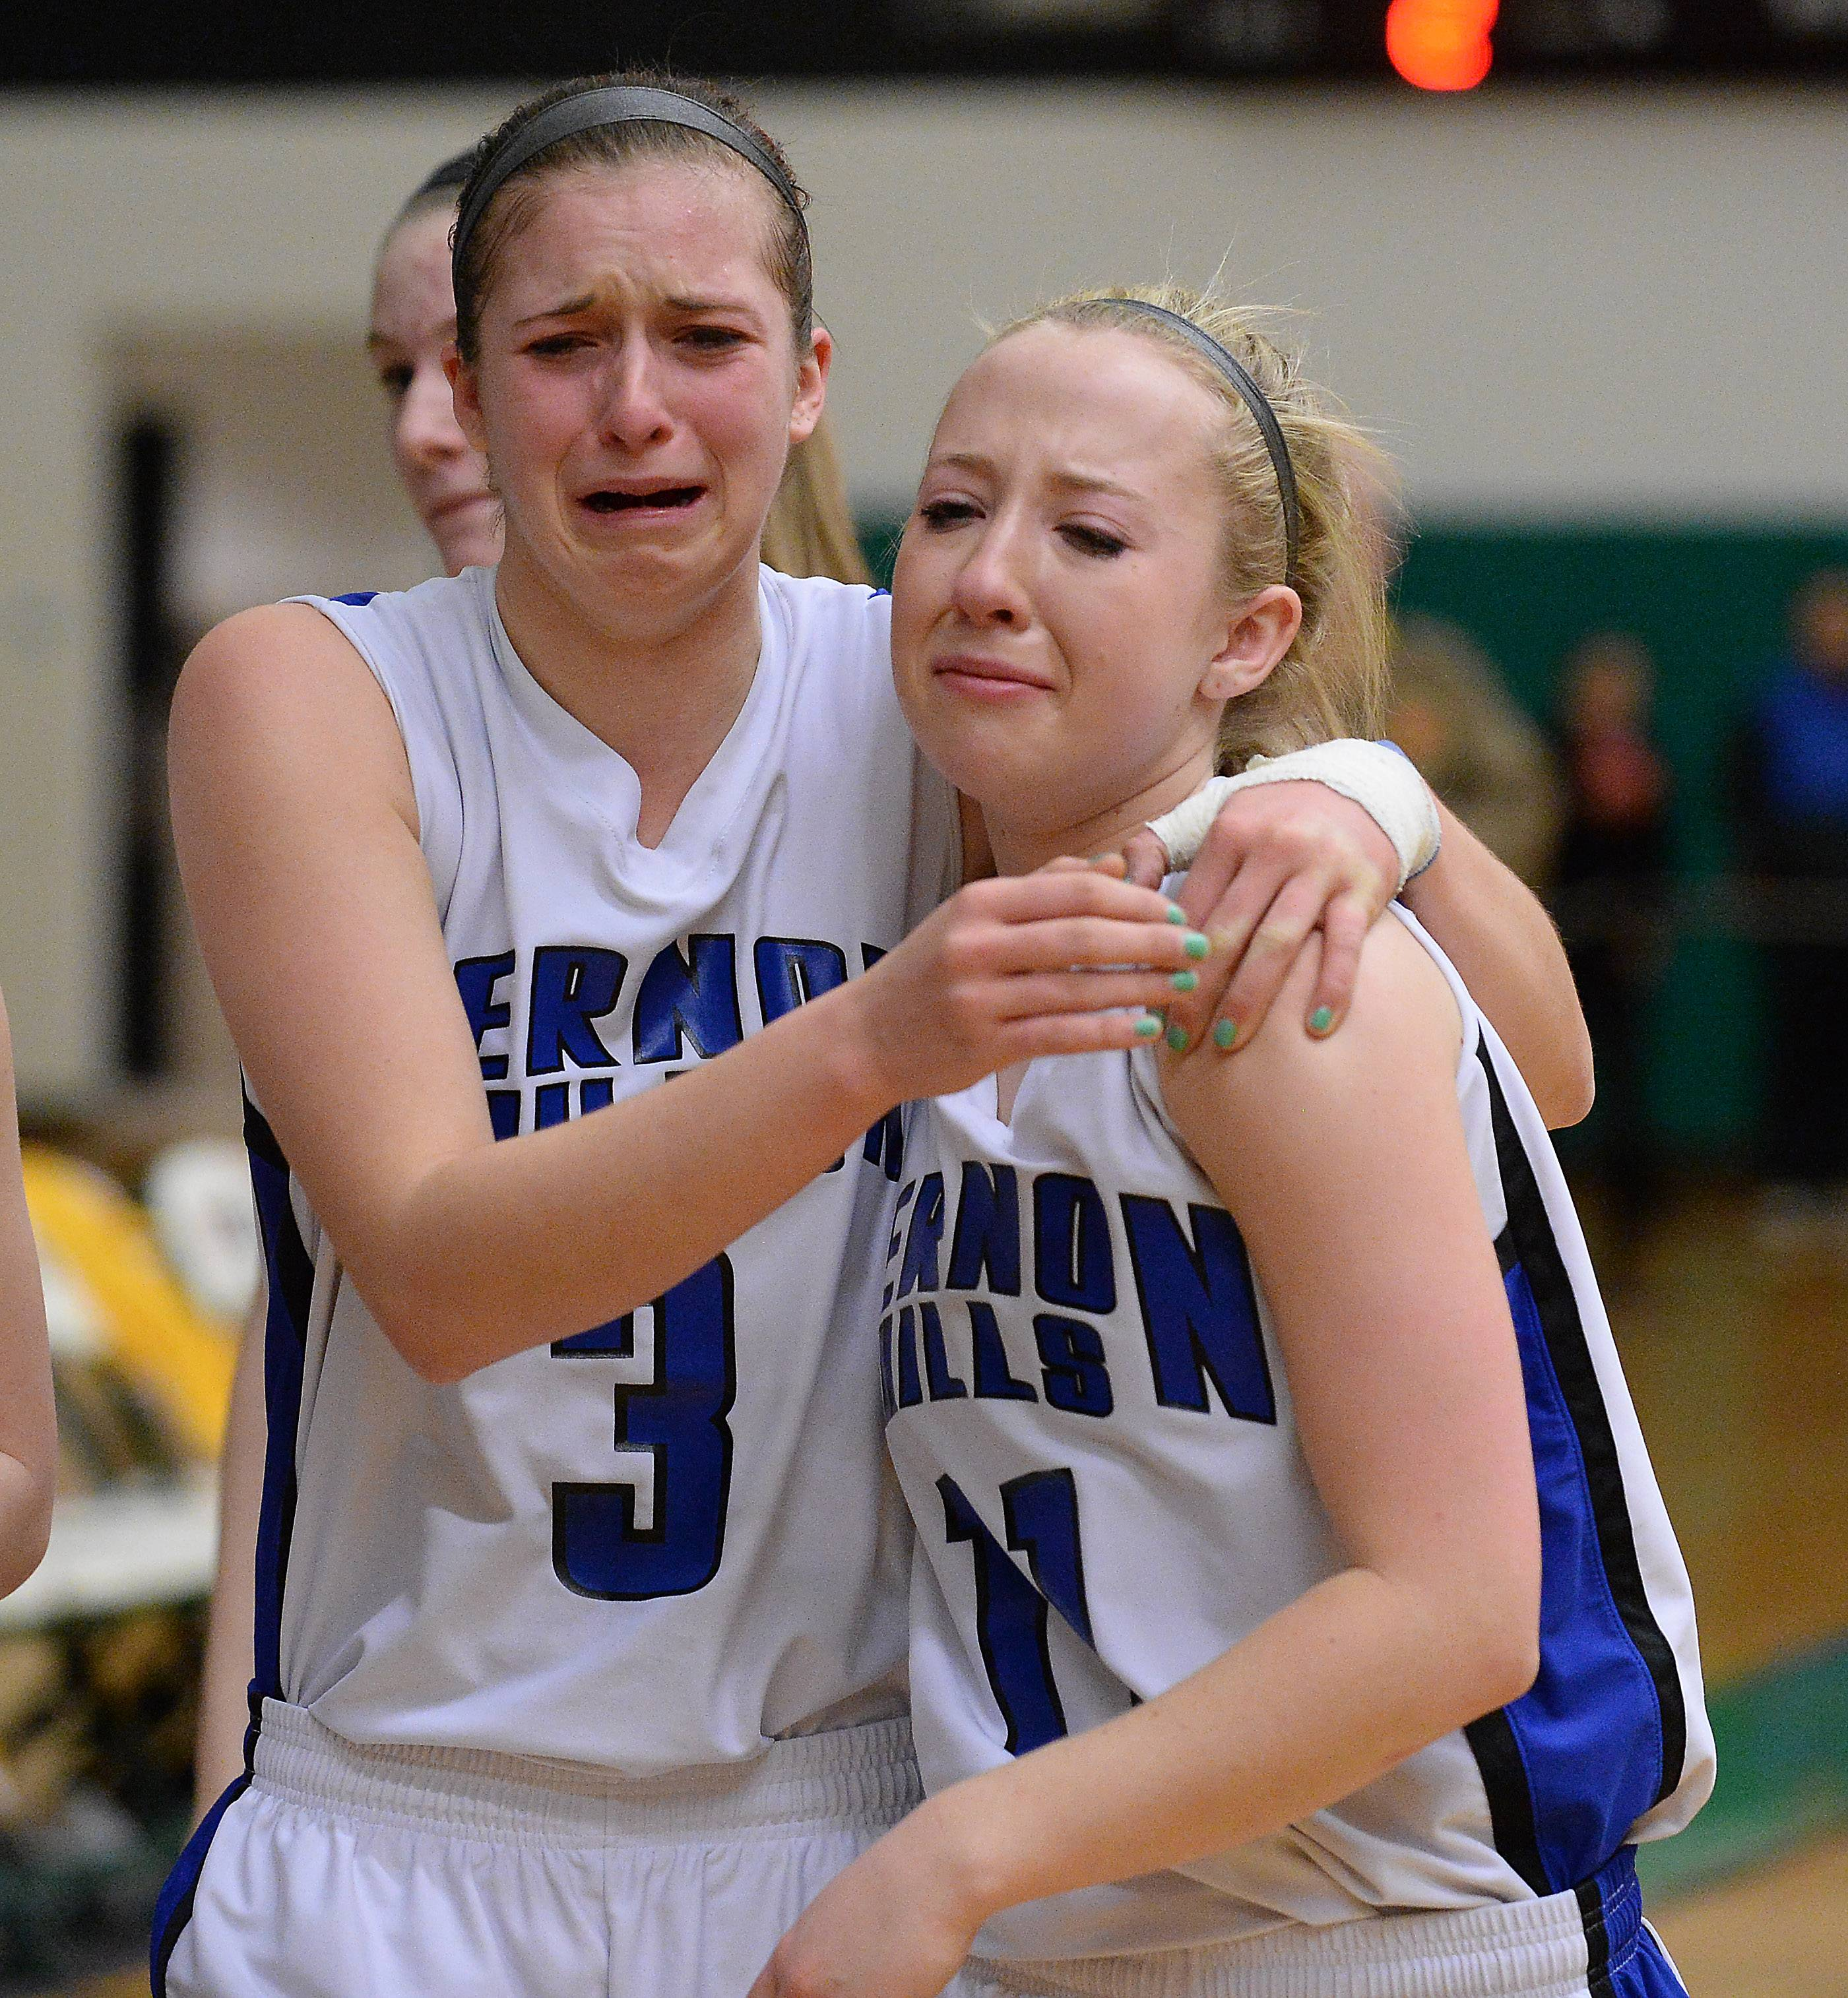 Vernon Hills' Dana Meline (3) and Haley Lieberman (11) feel the sting of a loss to Carmel in the Class 3A sectional championship game at Ridgewood High School on Thursday.